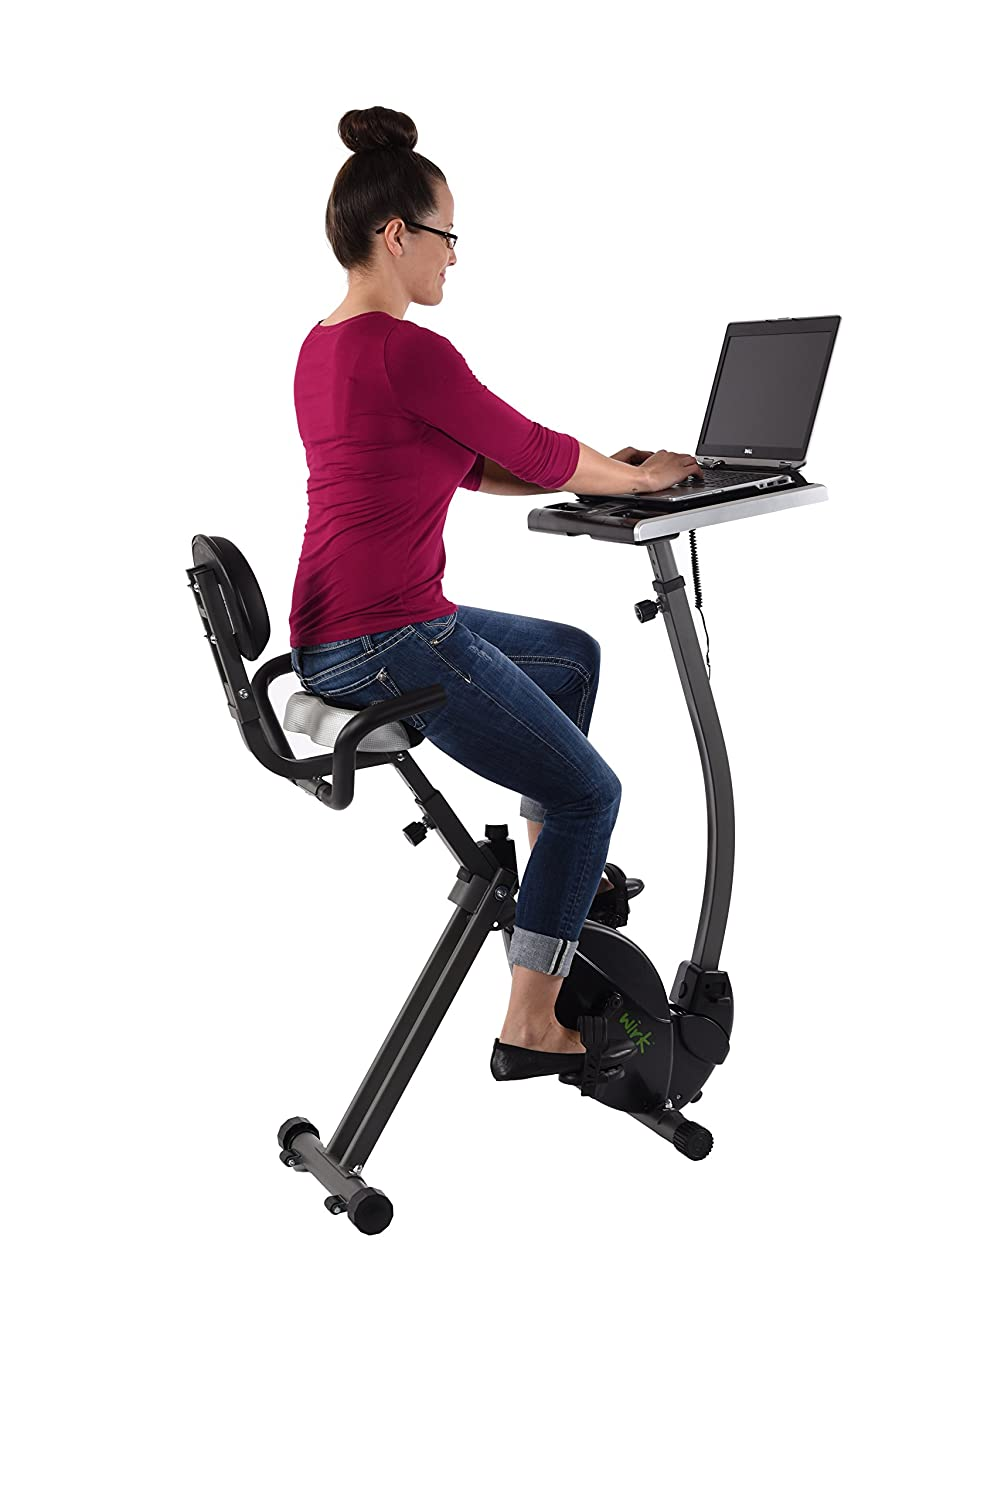 p this desk unconsciously gadget workout makes funny at under you your exercise looking to poster forces